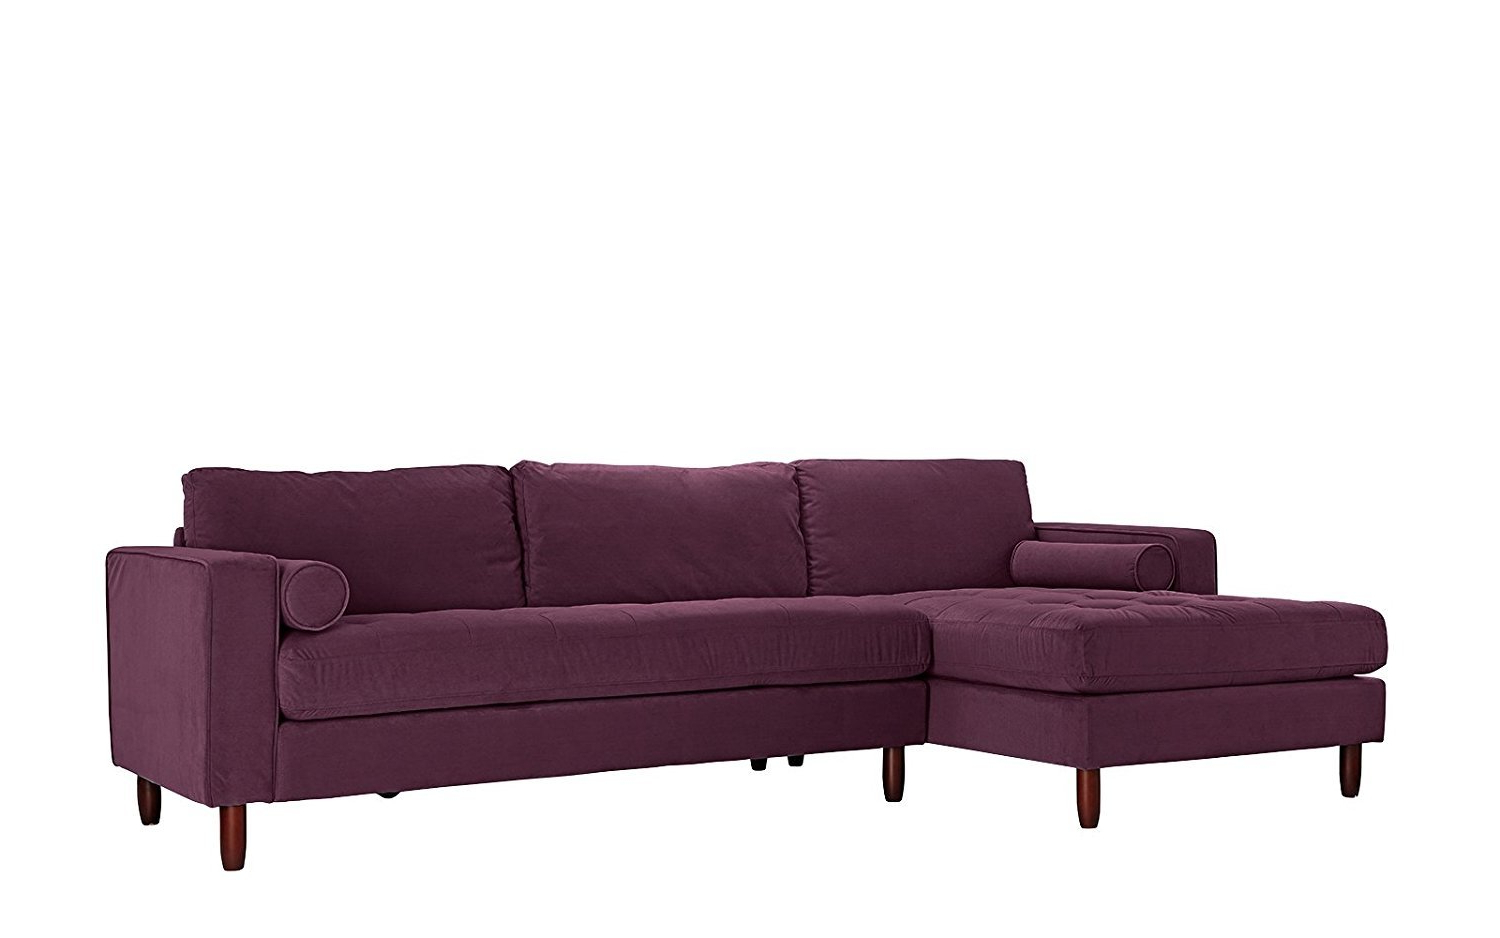 Tufted Velvet Fabric Sectional Sofa, L Shape Couch Left With Regard To Well Known Florence Mid Century Modern Velvet Left Sectional Sofas (View 11 of 25)